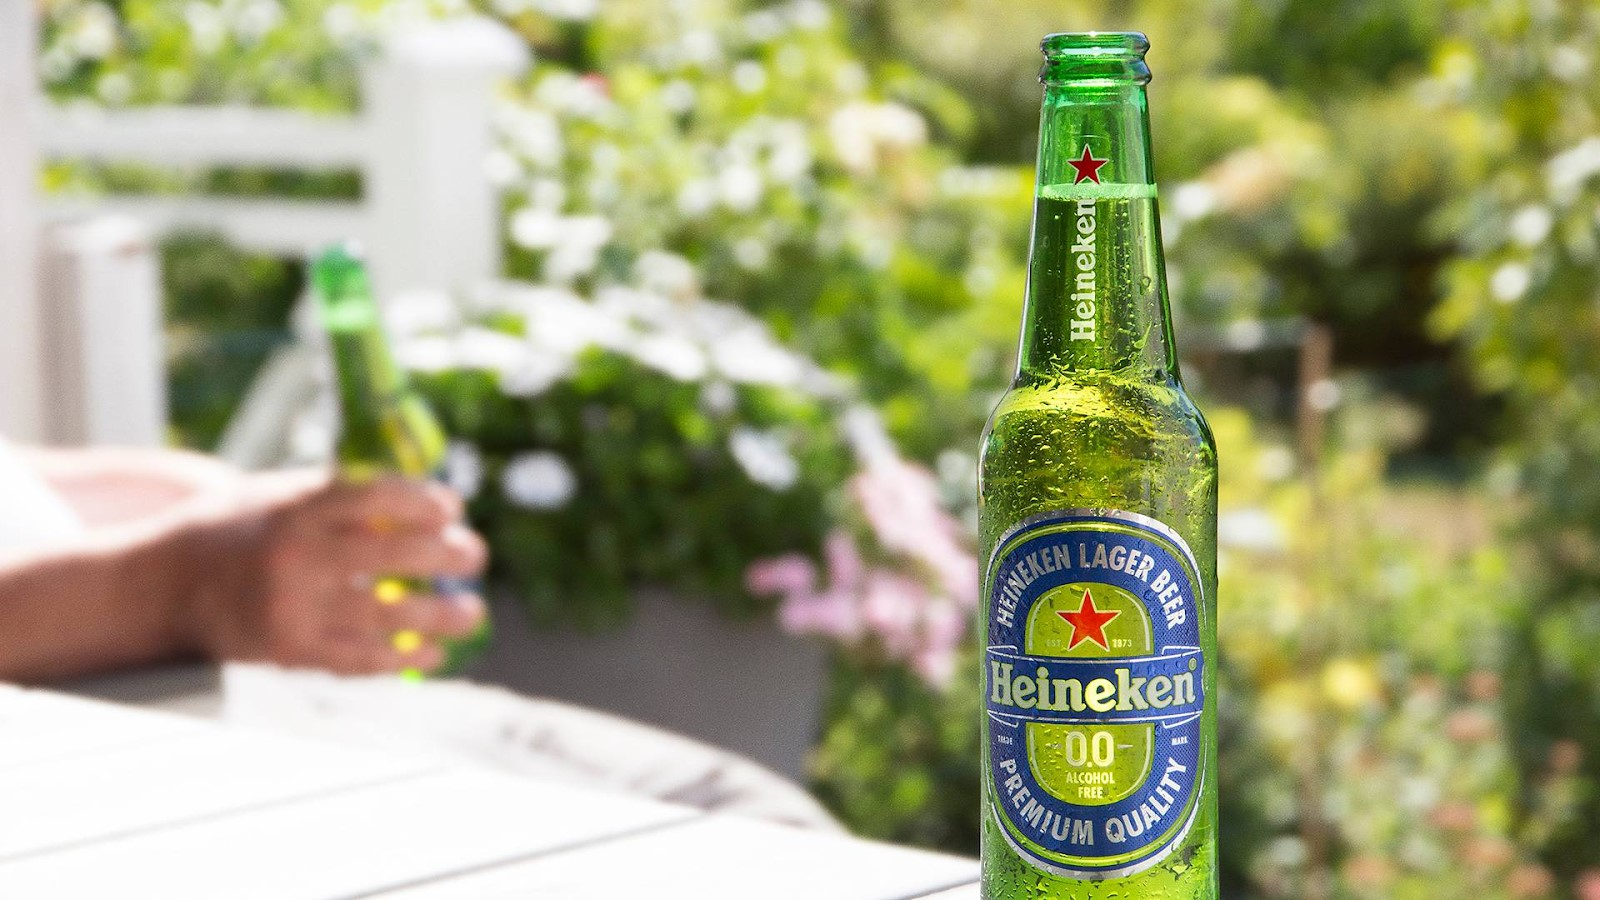 Heineken Zero Alcohol Marketing Campaign Trying to Keep Up with Millennials